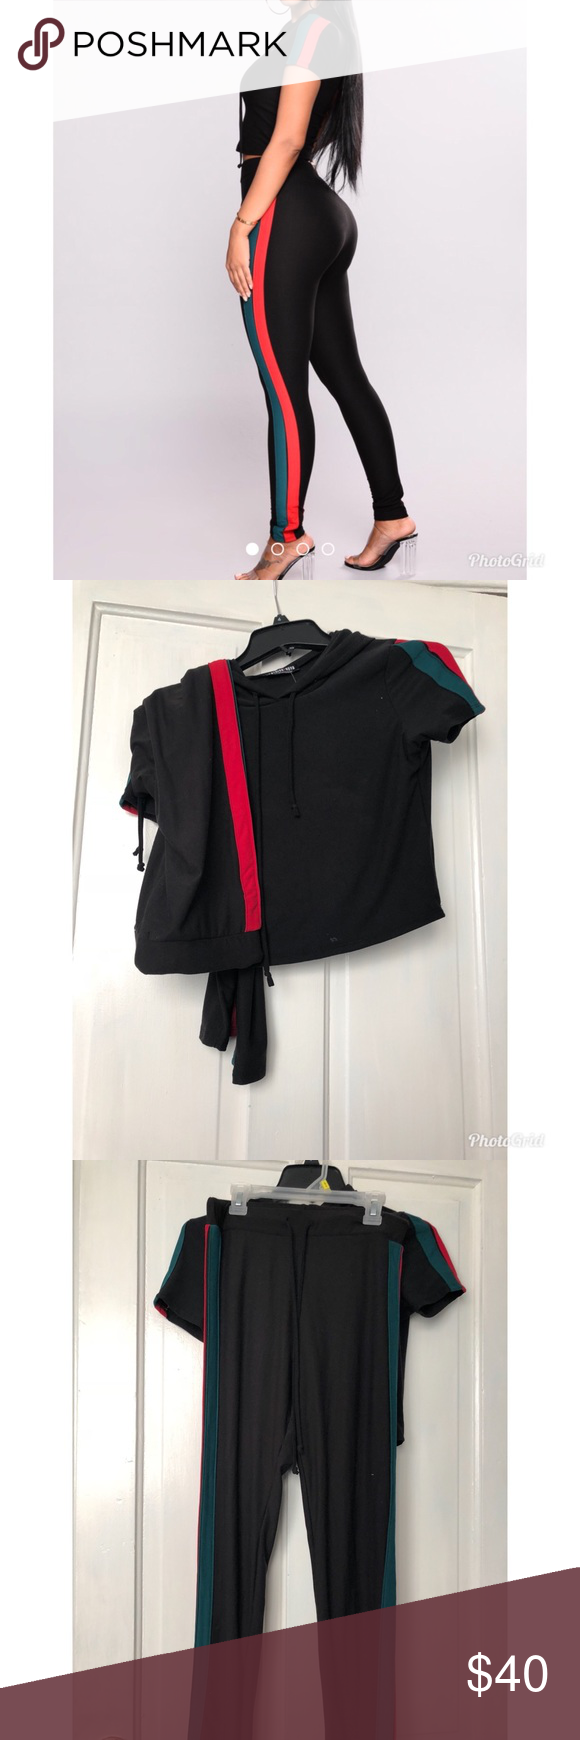 4018f63b0 2 Piece Set Gucci Inspired Hooded Crop Top and Leggings Set. Both Top and  Bottom are. Medium Fashion Nova Other